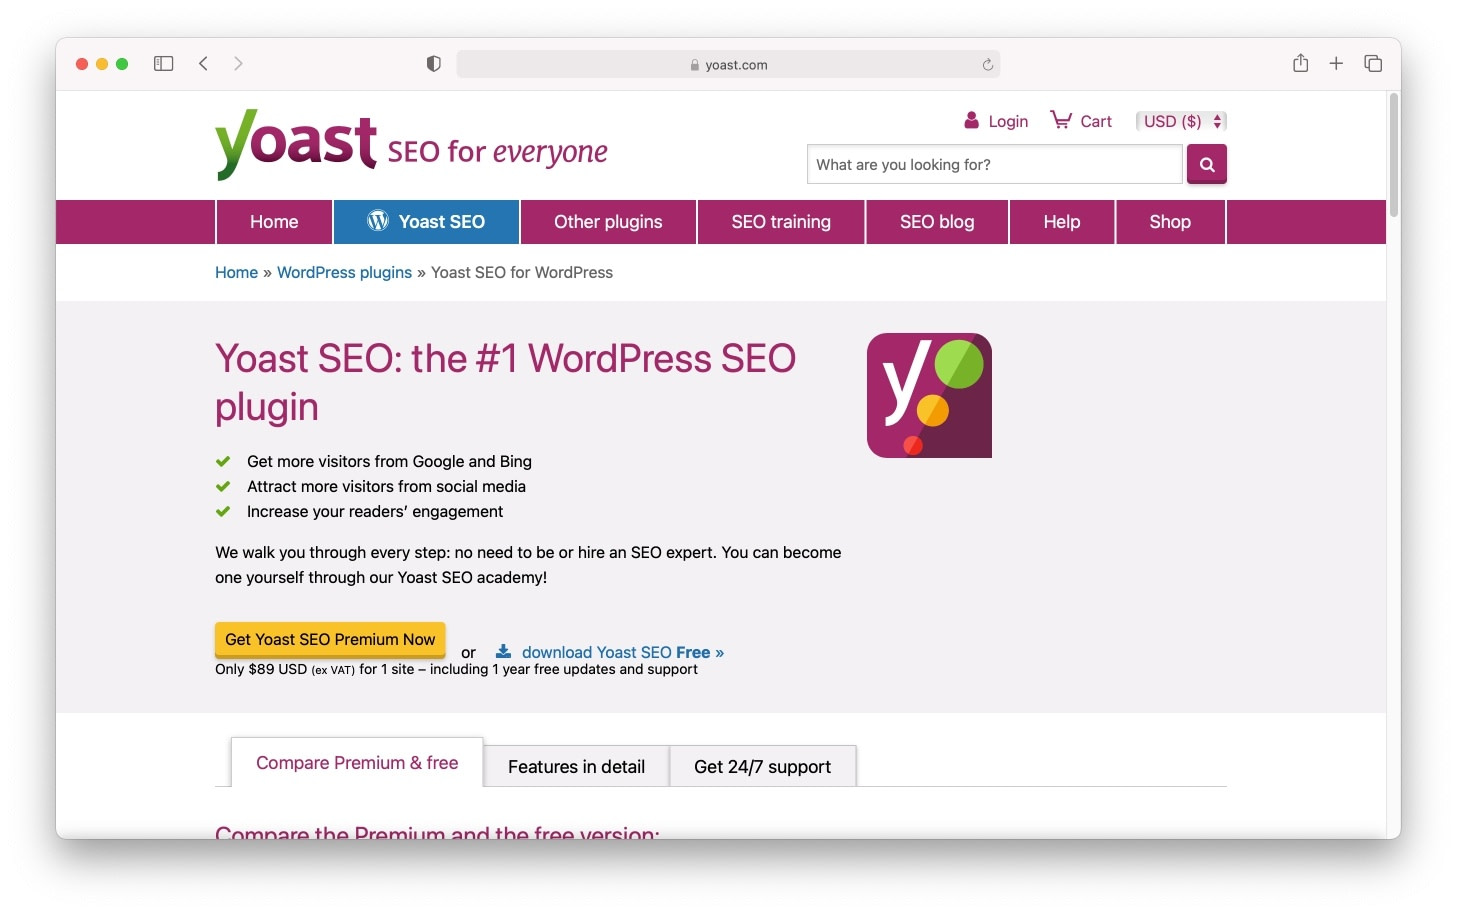 One of the most well-known SEO tools for WordPress: Yoast